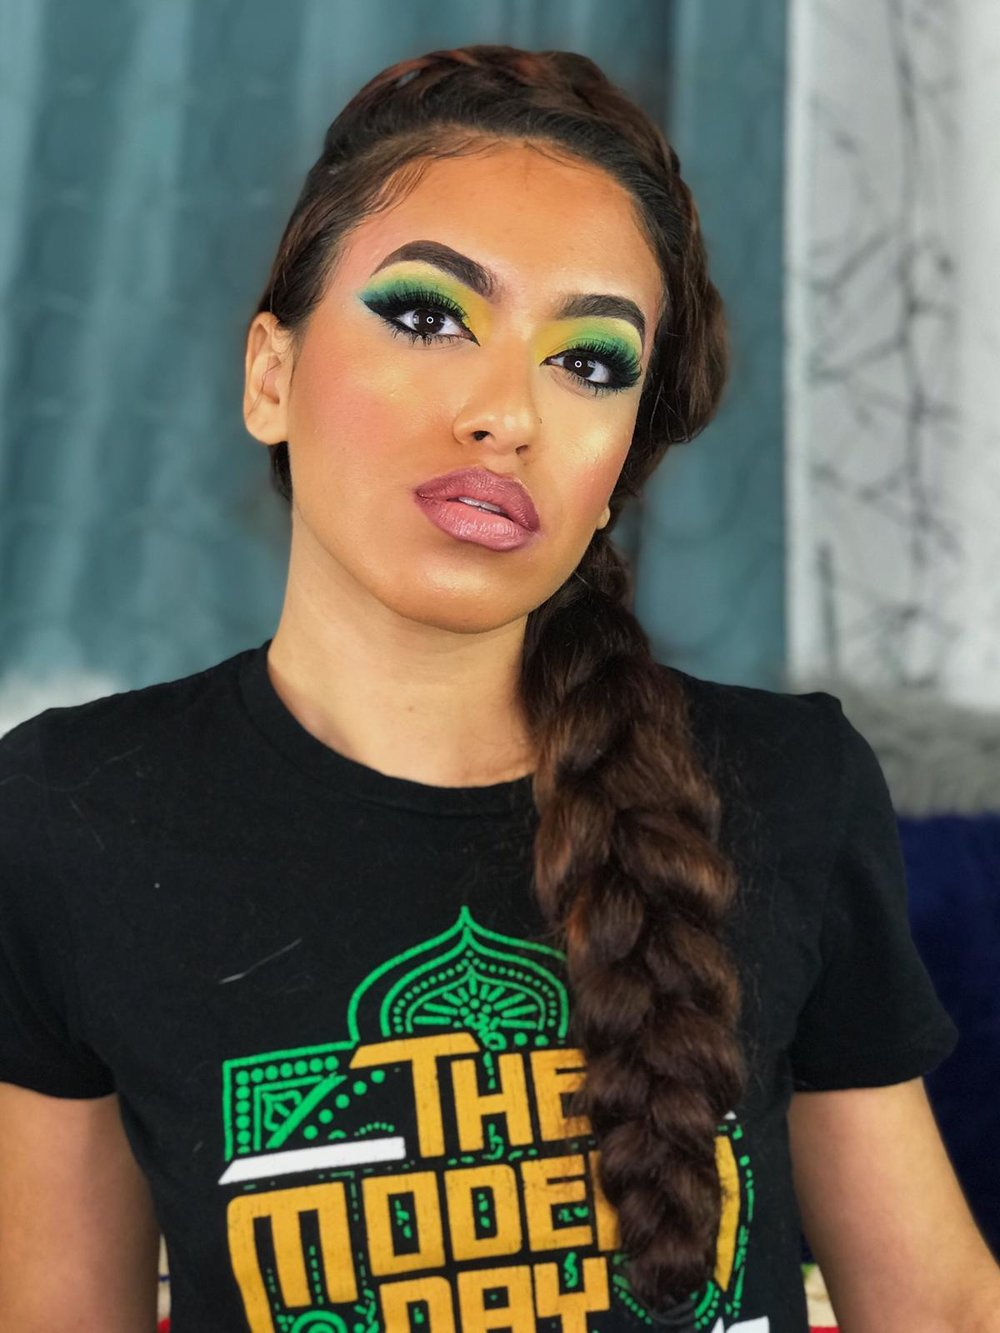 She is a Wrestlebae for sure, she took this WWEShop tee and made a flawless eye look